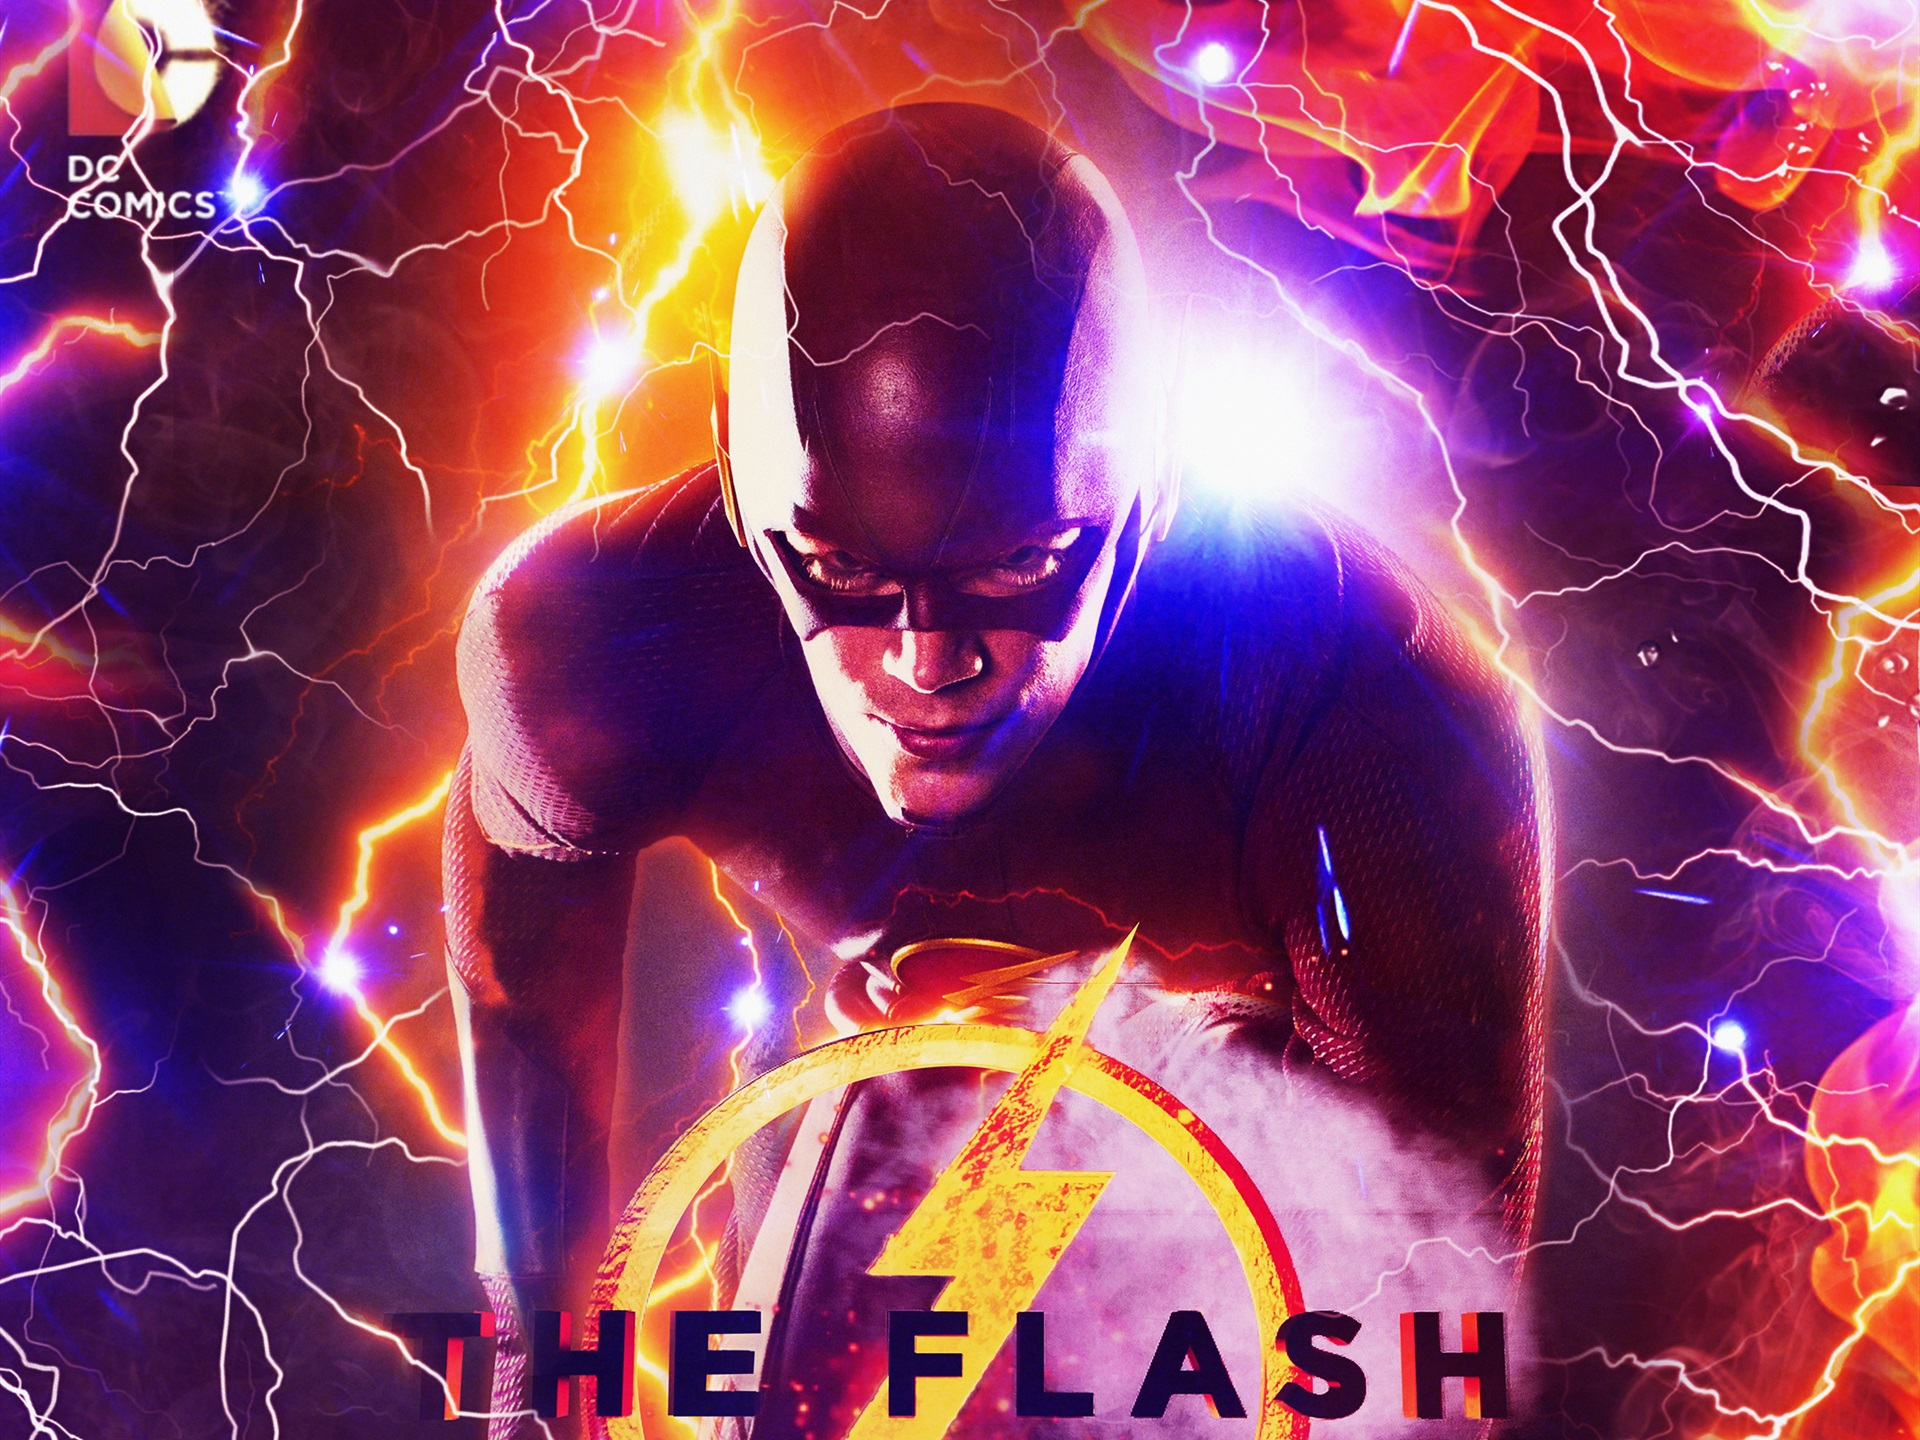 Wallpaper The Flash 2018 1920x1440 HD Picture, Image